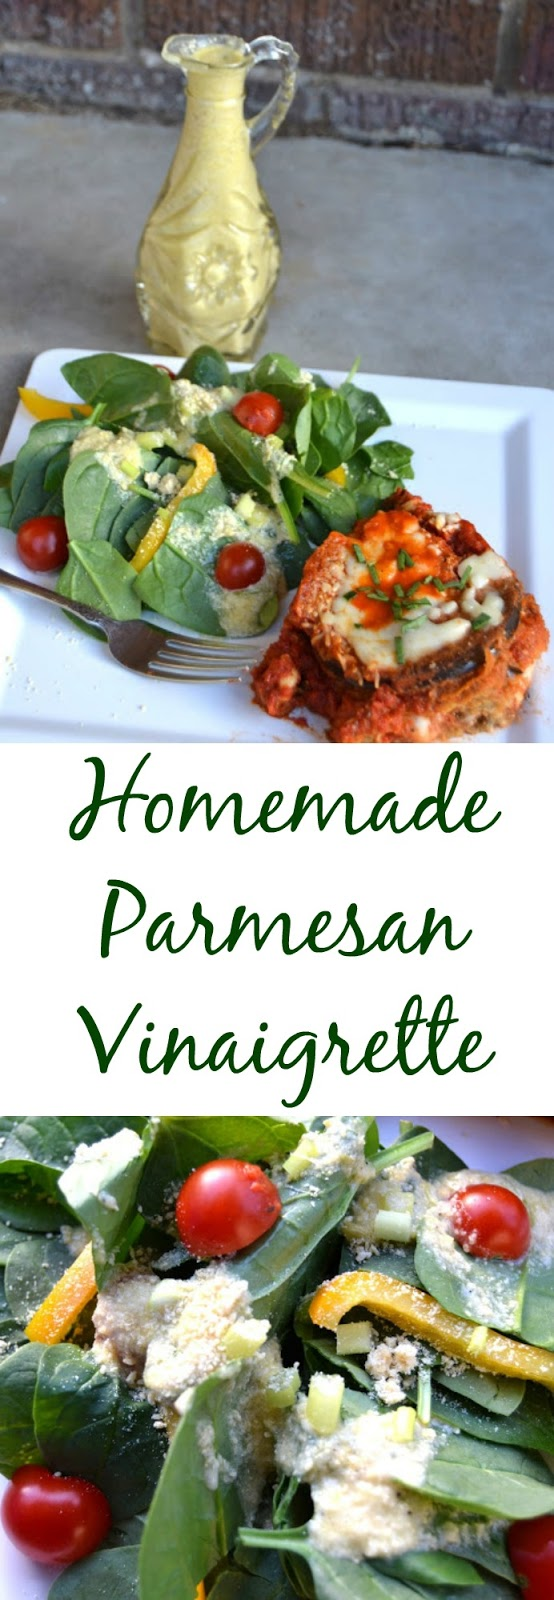 This homemade parmesan vinaigrette will give housemade Italian dressings at restaurants a run for their money. It is full of flavor and is healthier than store bought dressings! www.nutritionistreviews.com